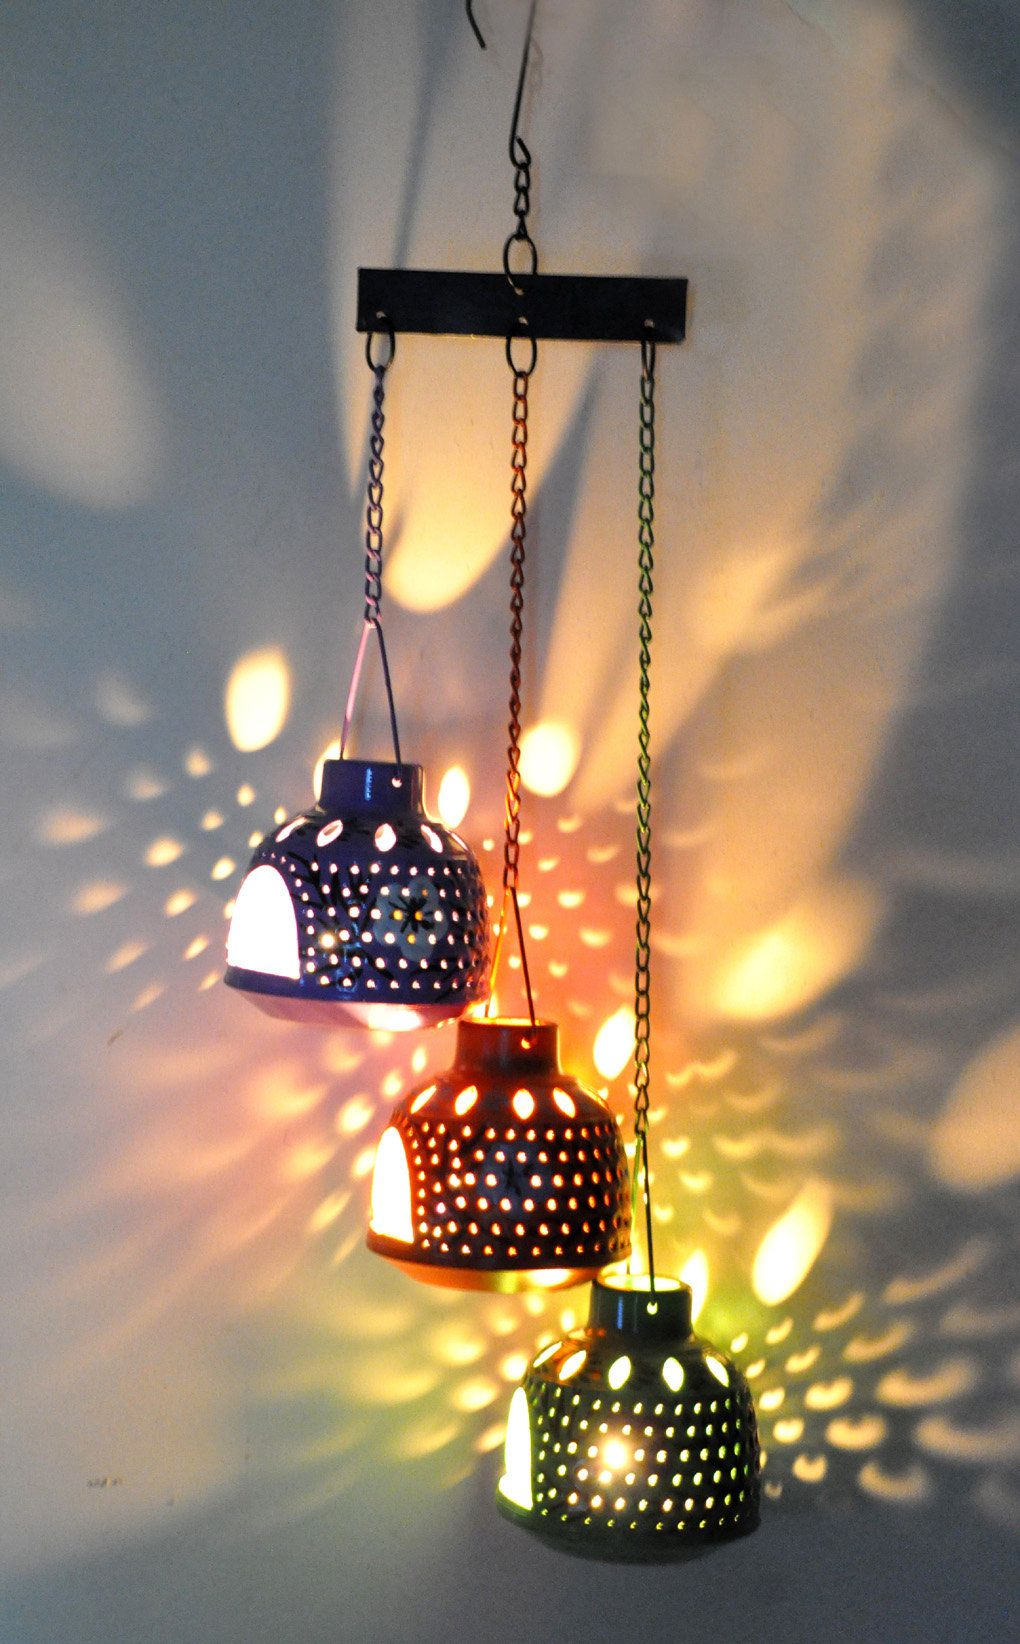 Home Decorative Moroccan Hanging Lantern Candle Holder Light Ceiling Pendant Lamp Valen Outdoor Candle Chandelier Hanging Candle Lanterns Hanging Candle Holder